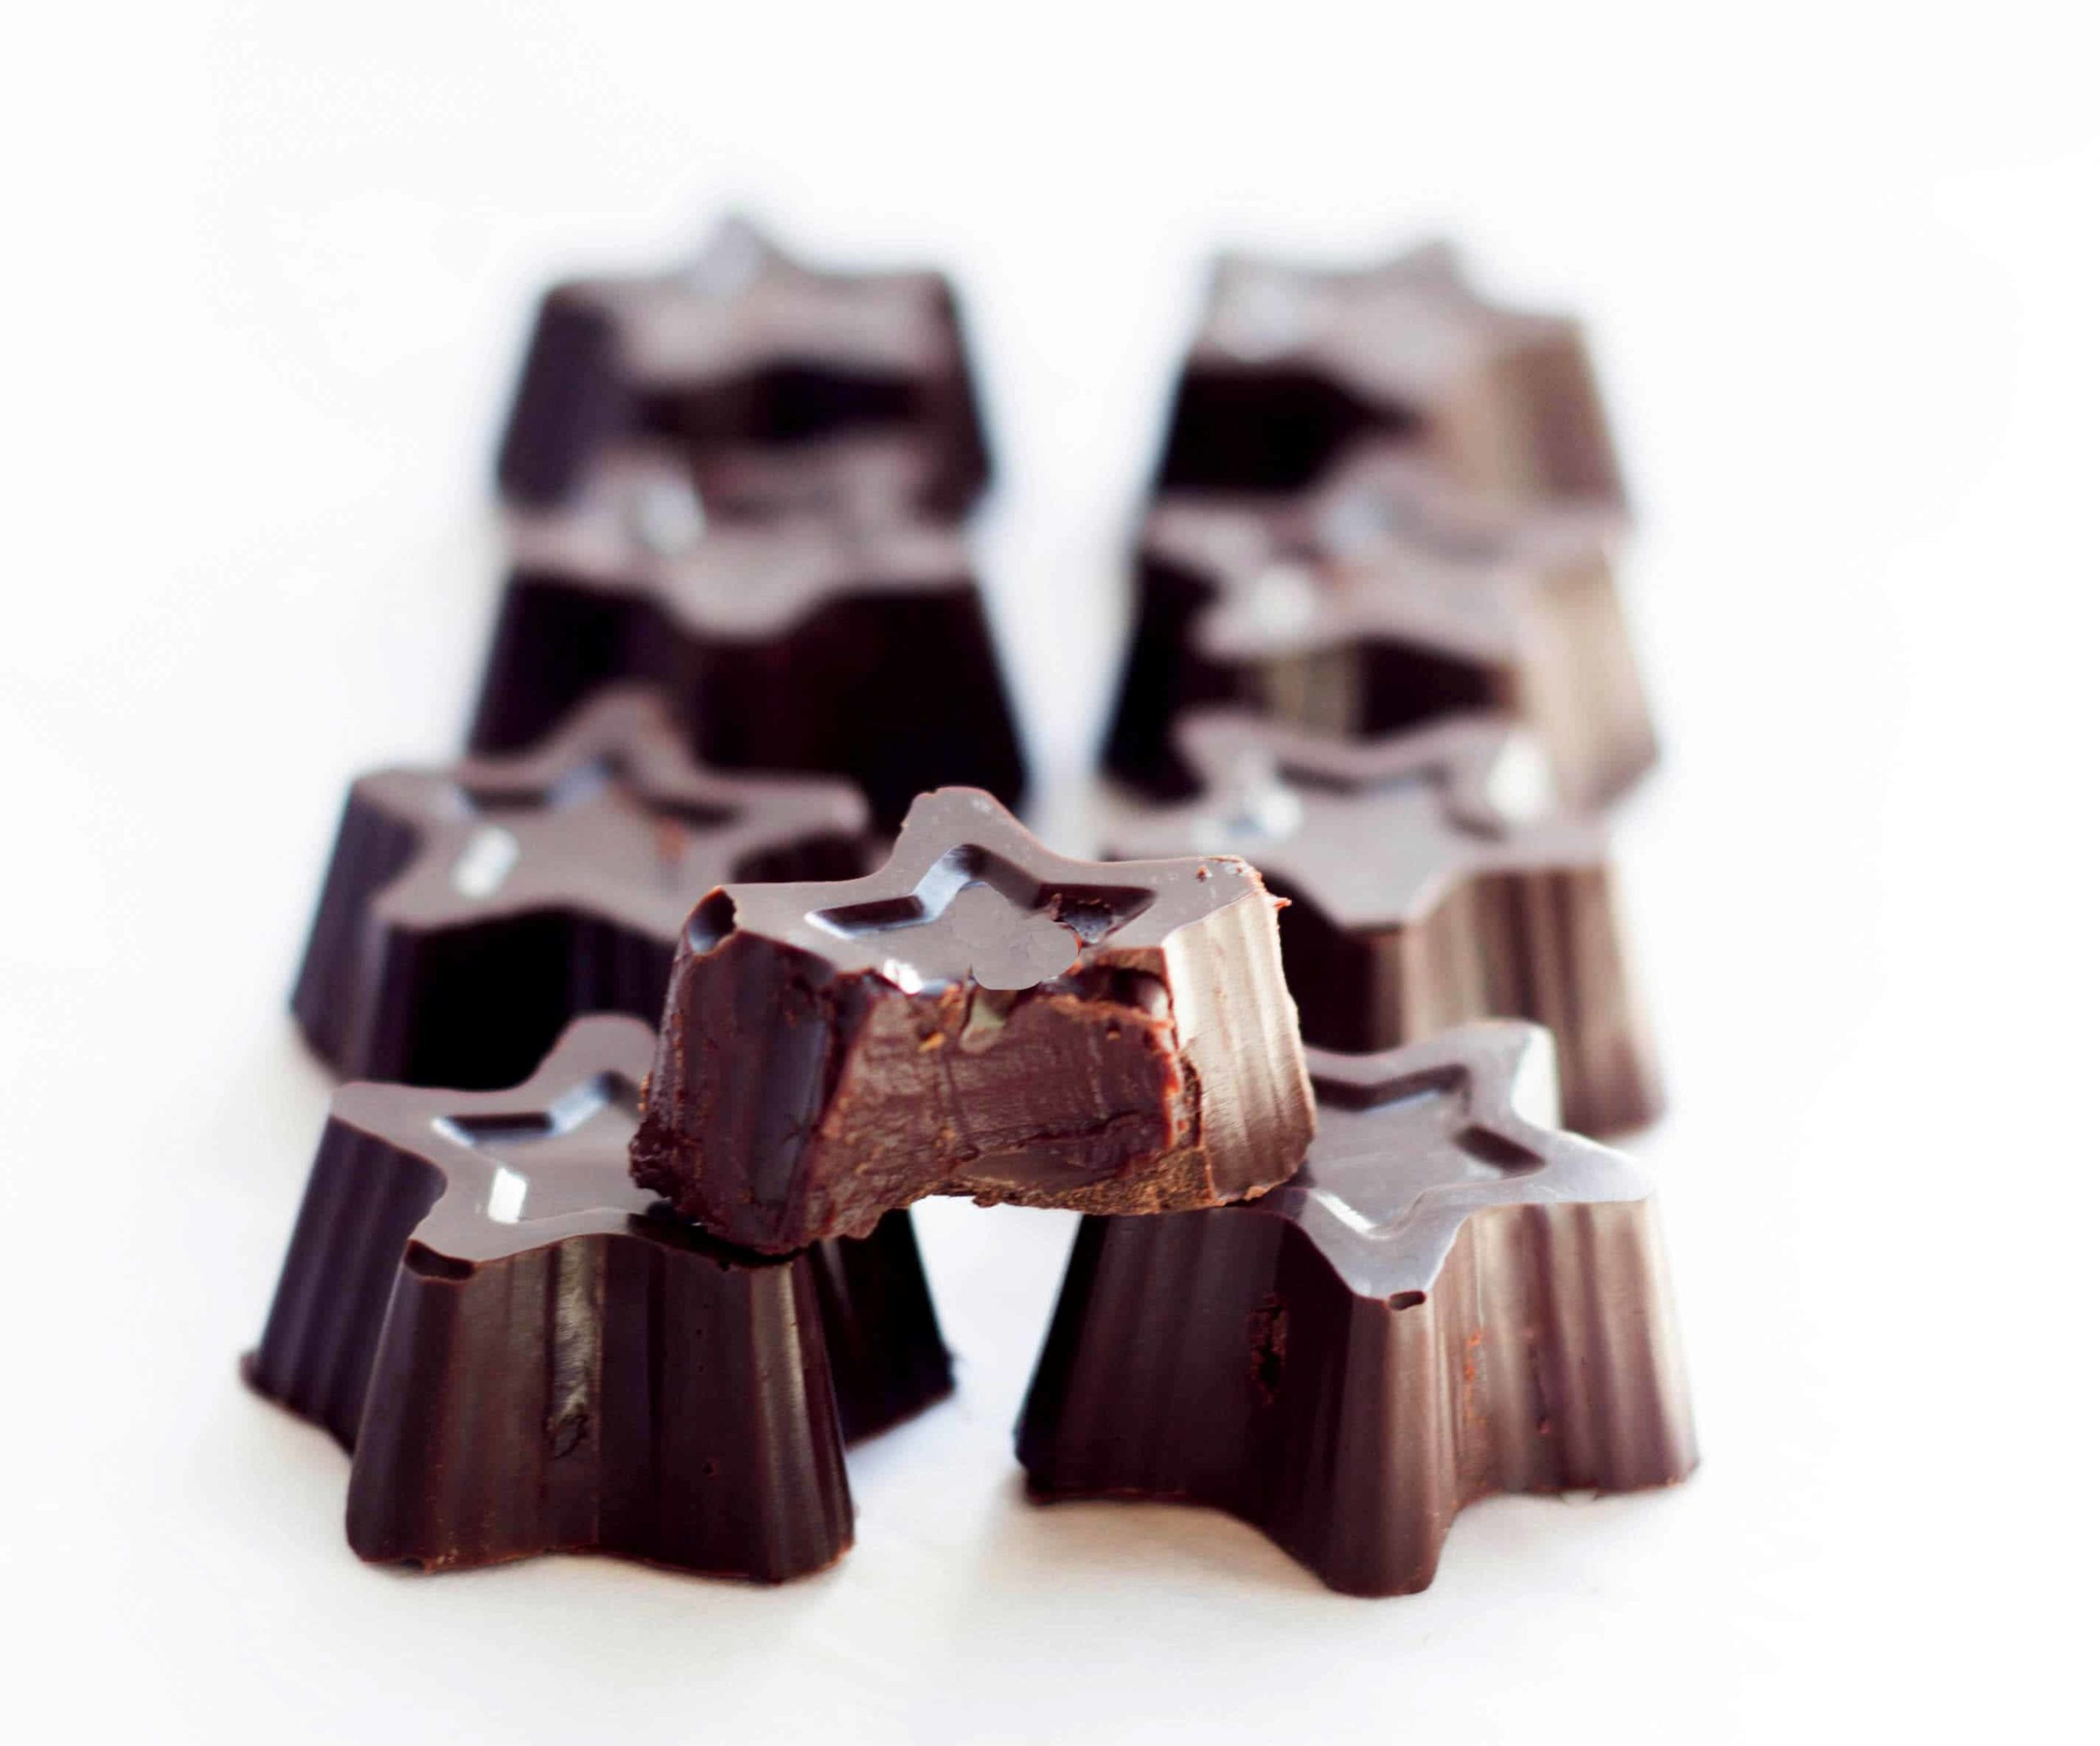 eight star shaped dark chocolate truffles with one in the front with a bite out of it.